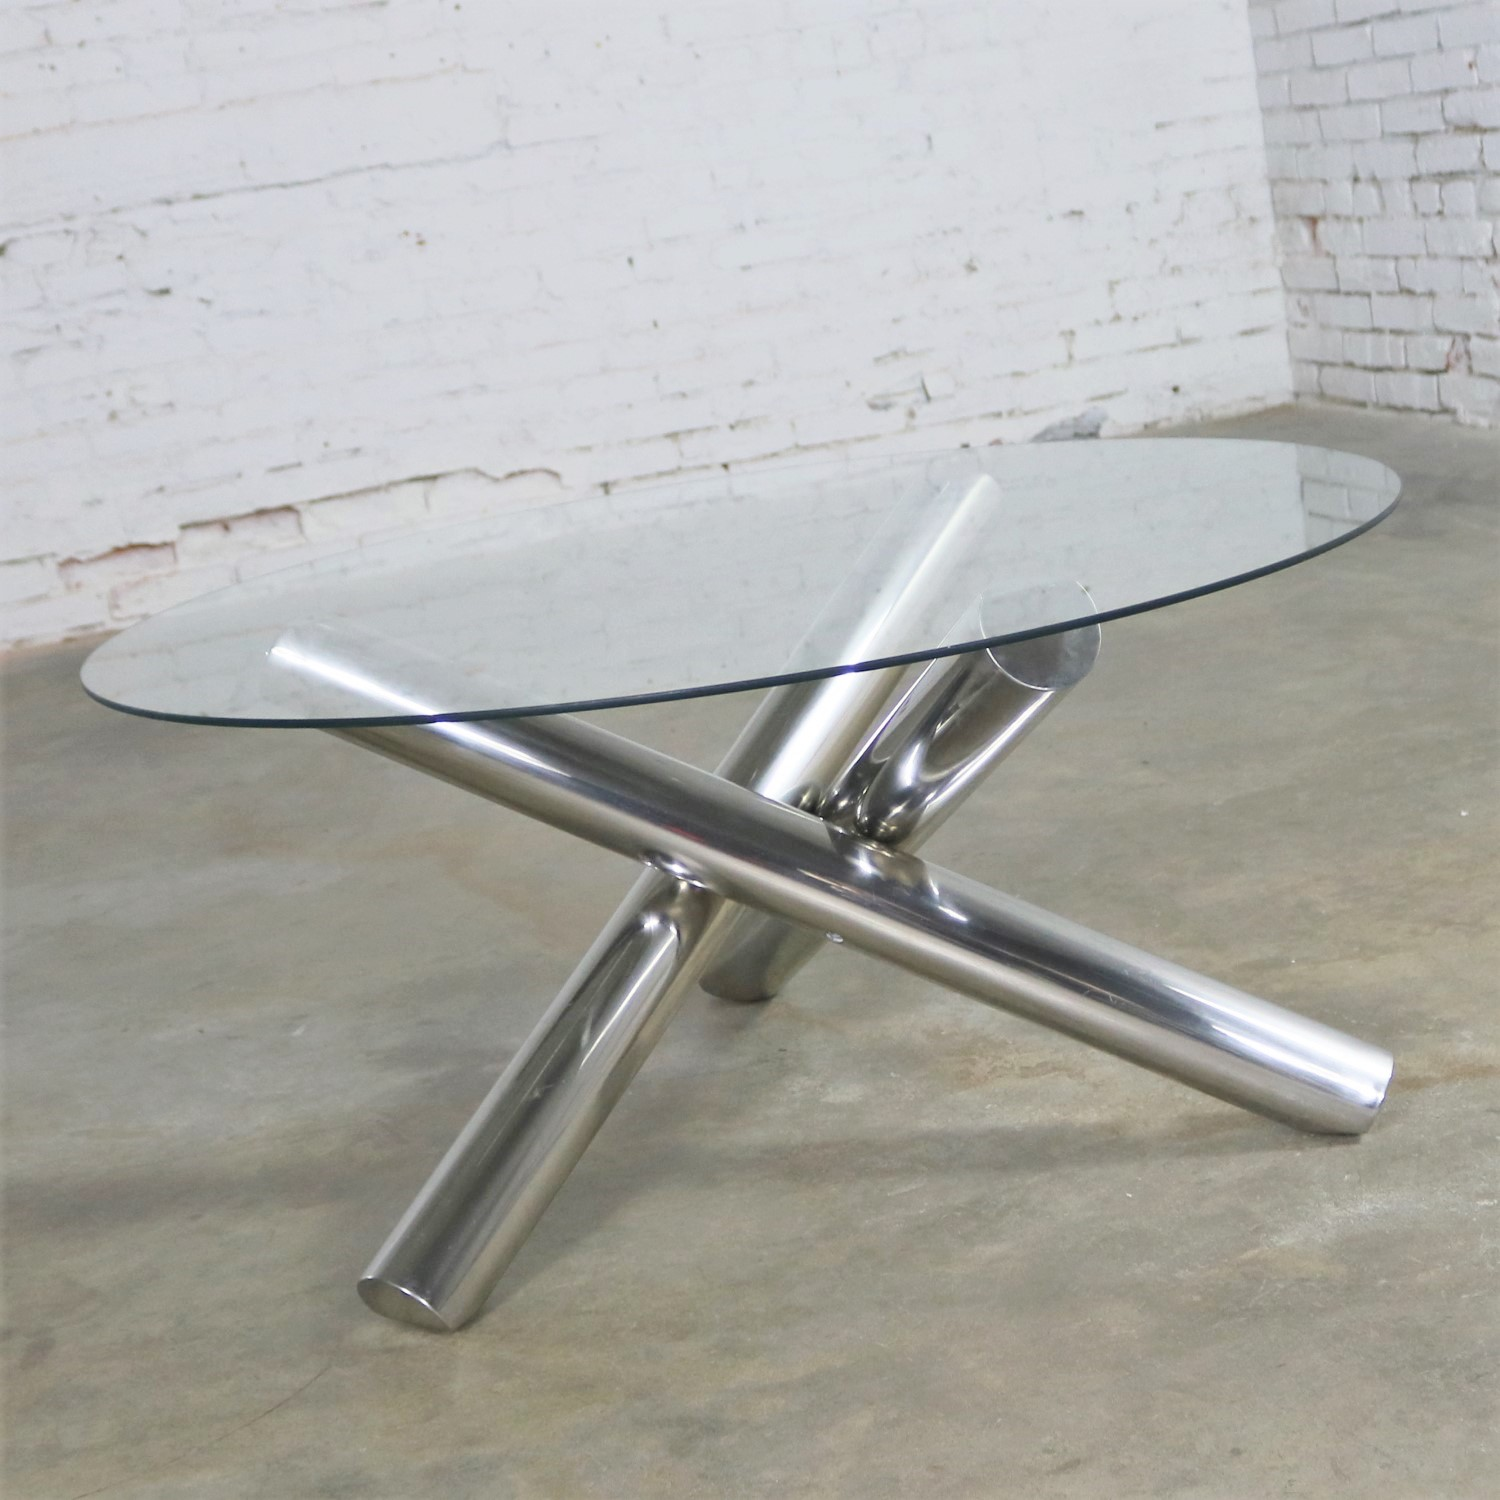 Tubular Stainless Steel Jacks Tripod Coffee Table Round Glass Top Style Of  Milo Baughman